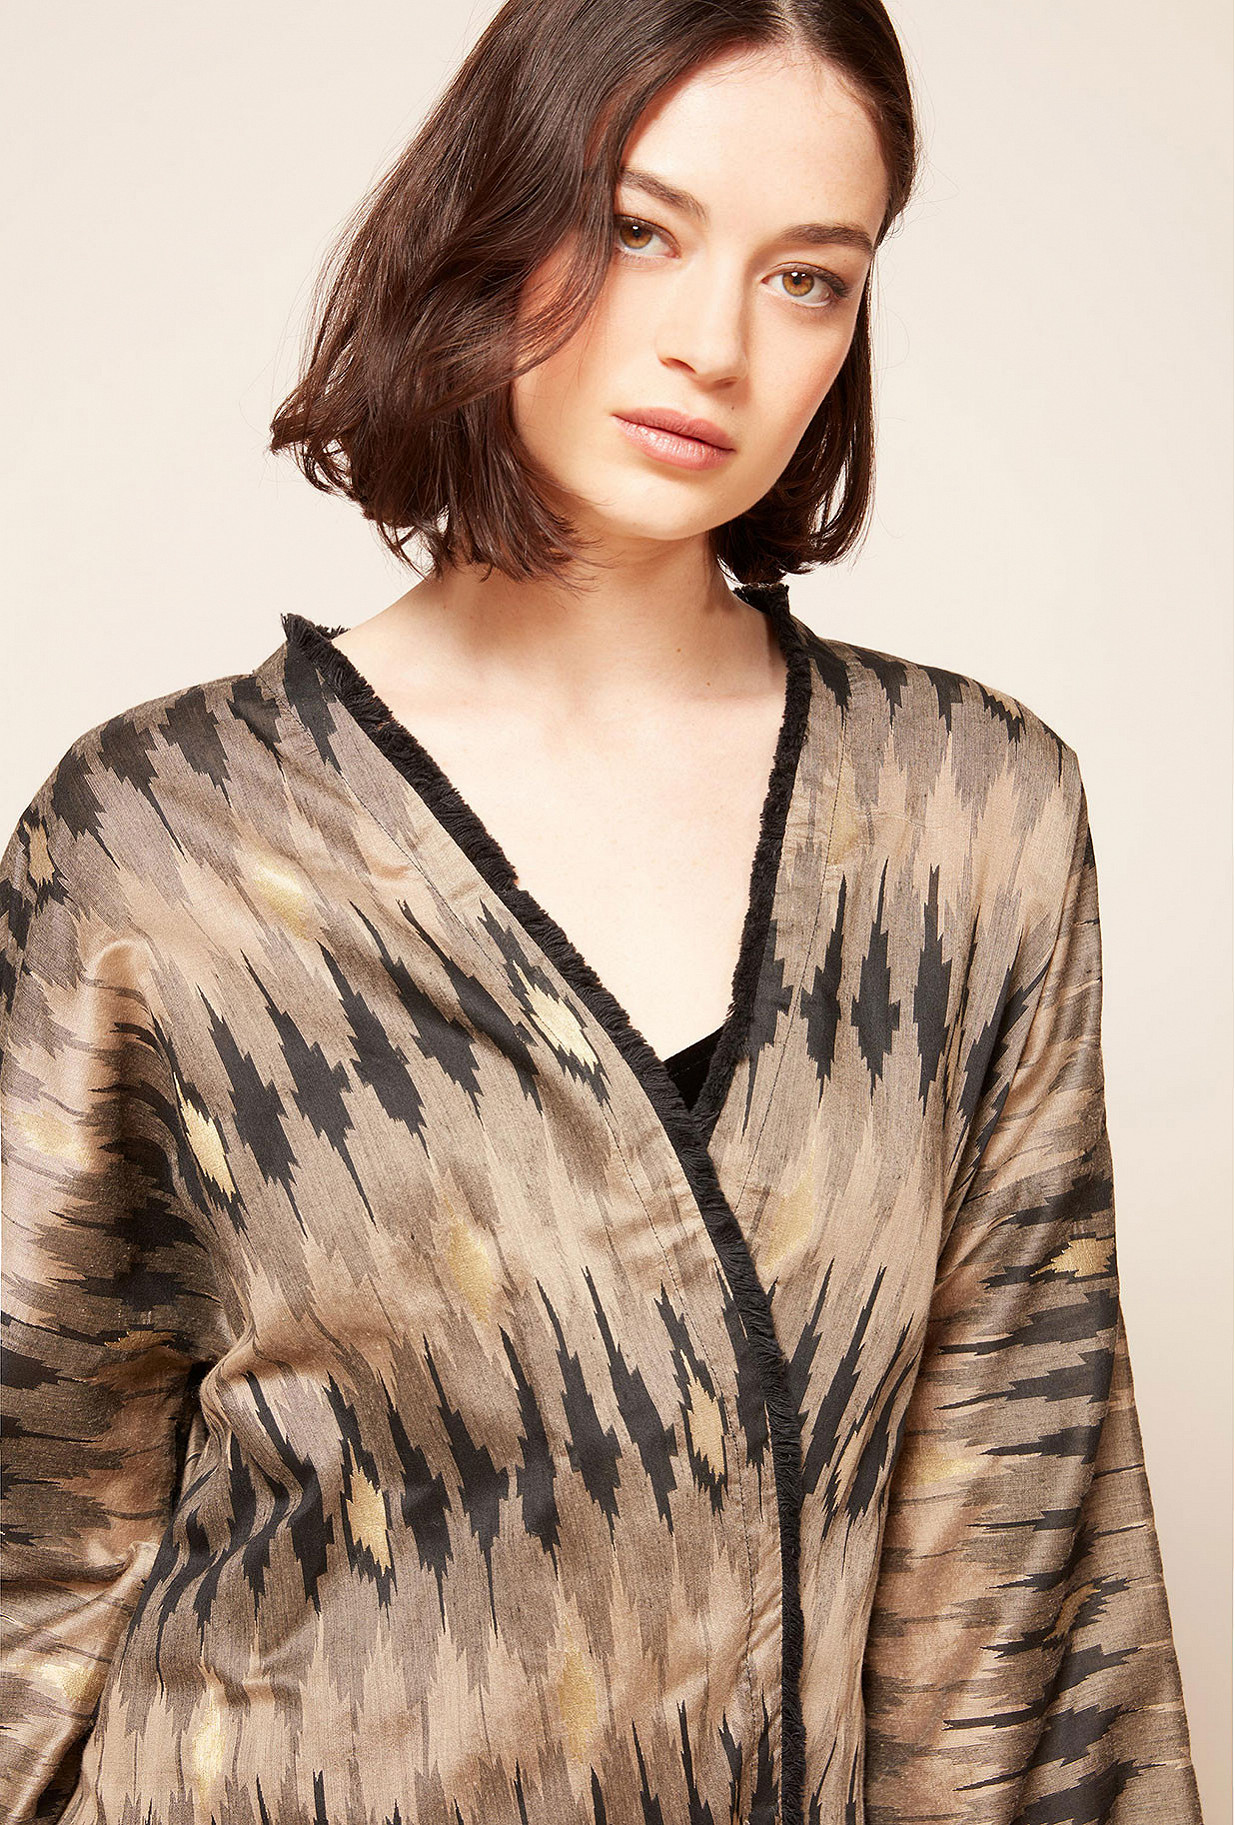 Grey print  Kimono  Jimbaram Mes demoiselles fashion clothes designer Paris